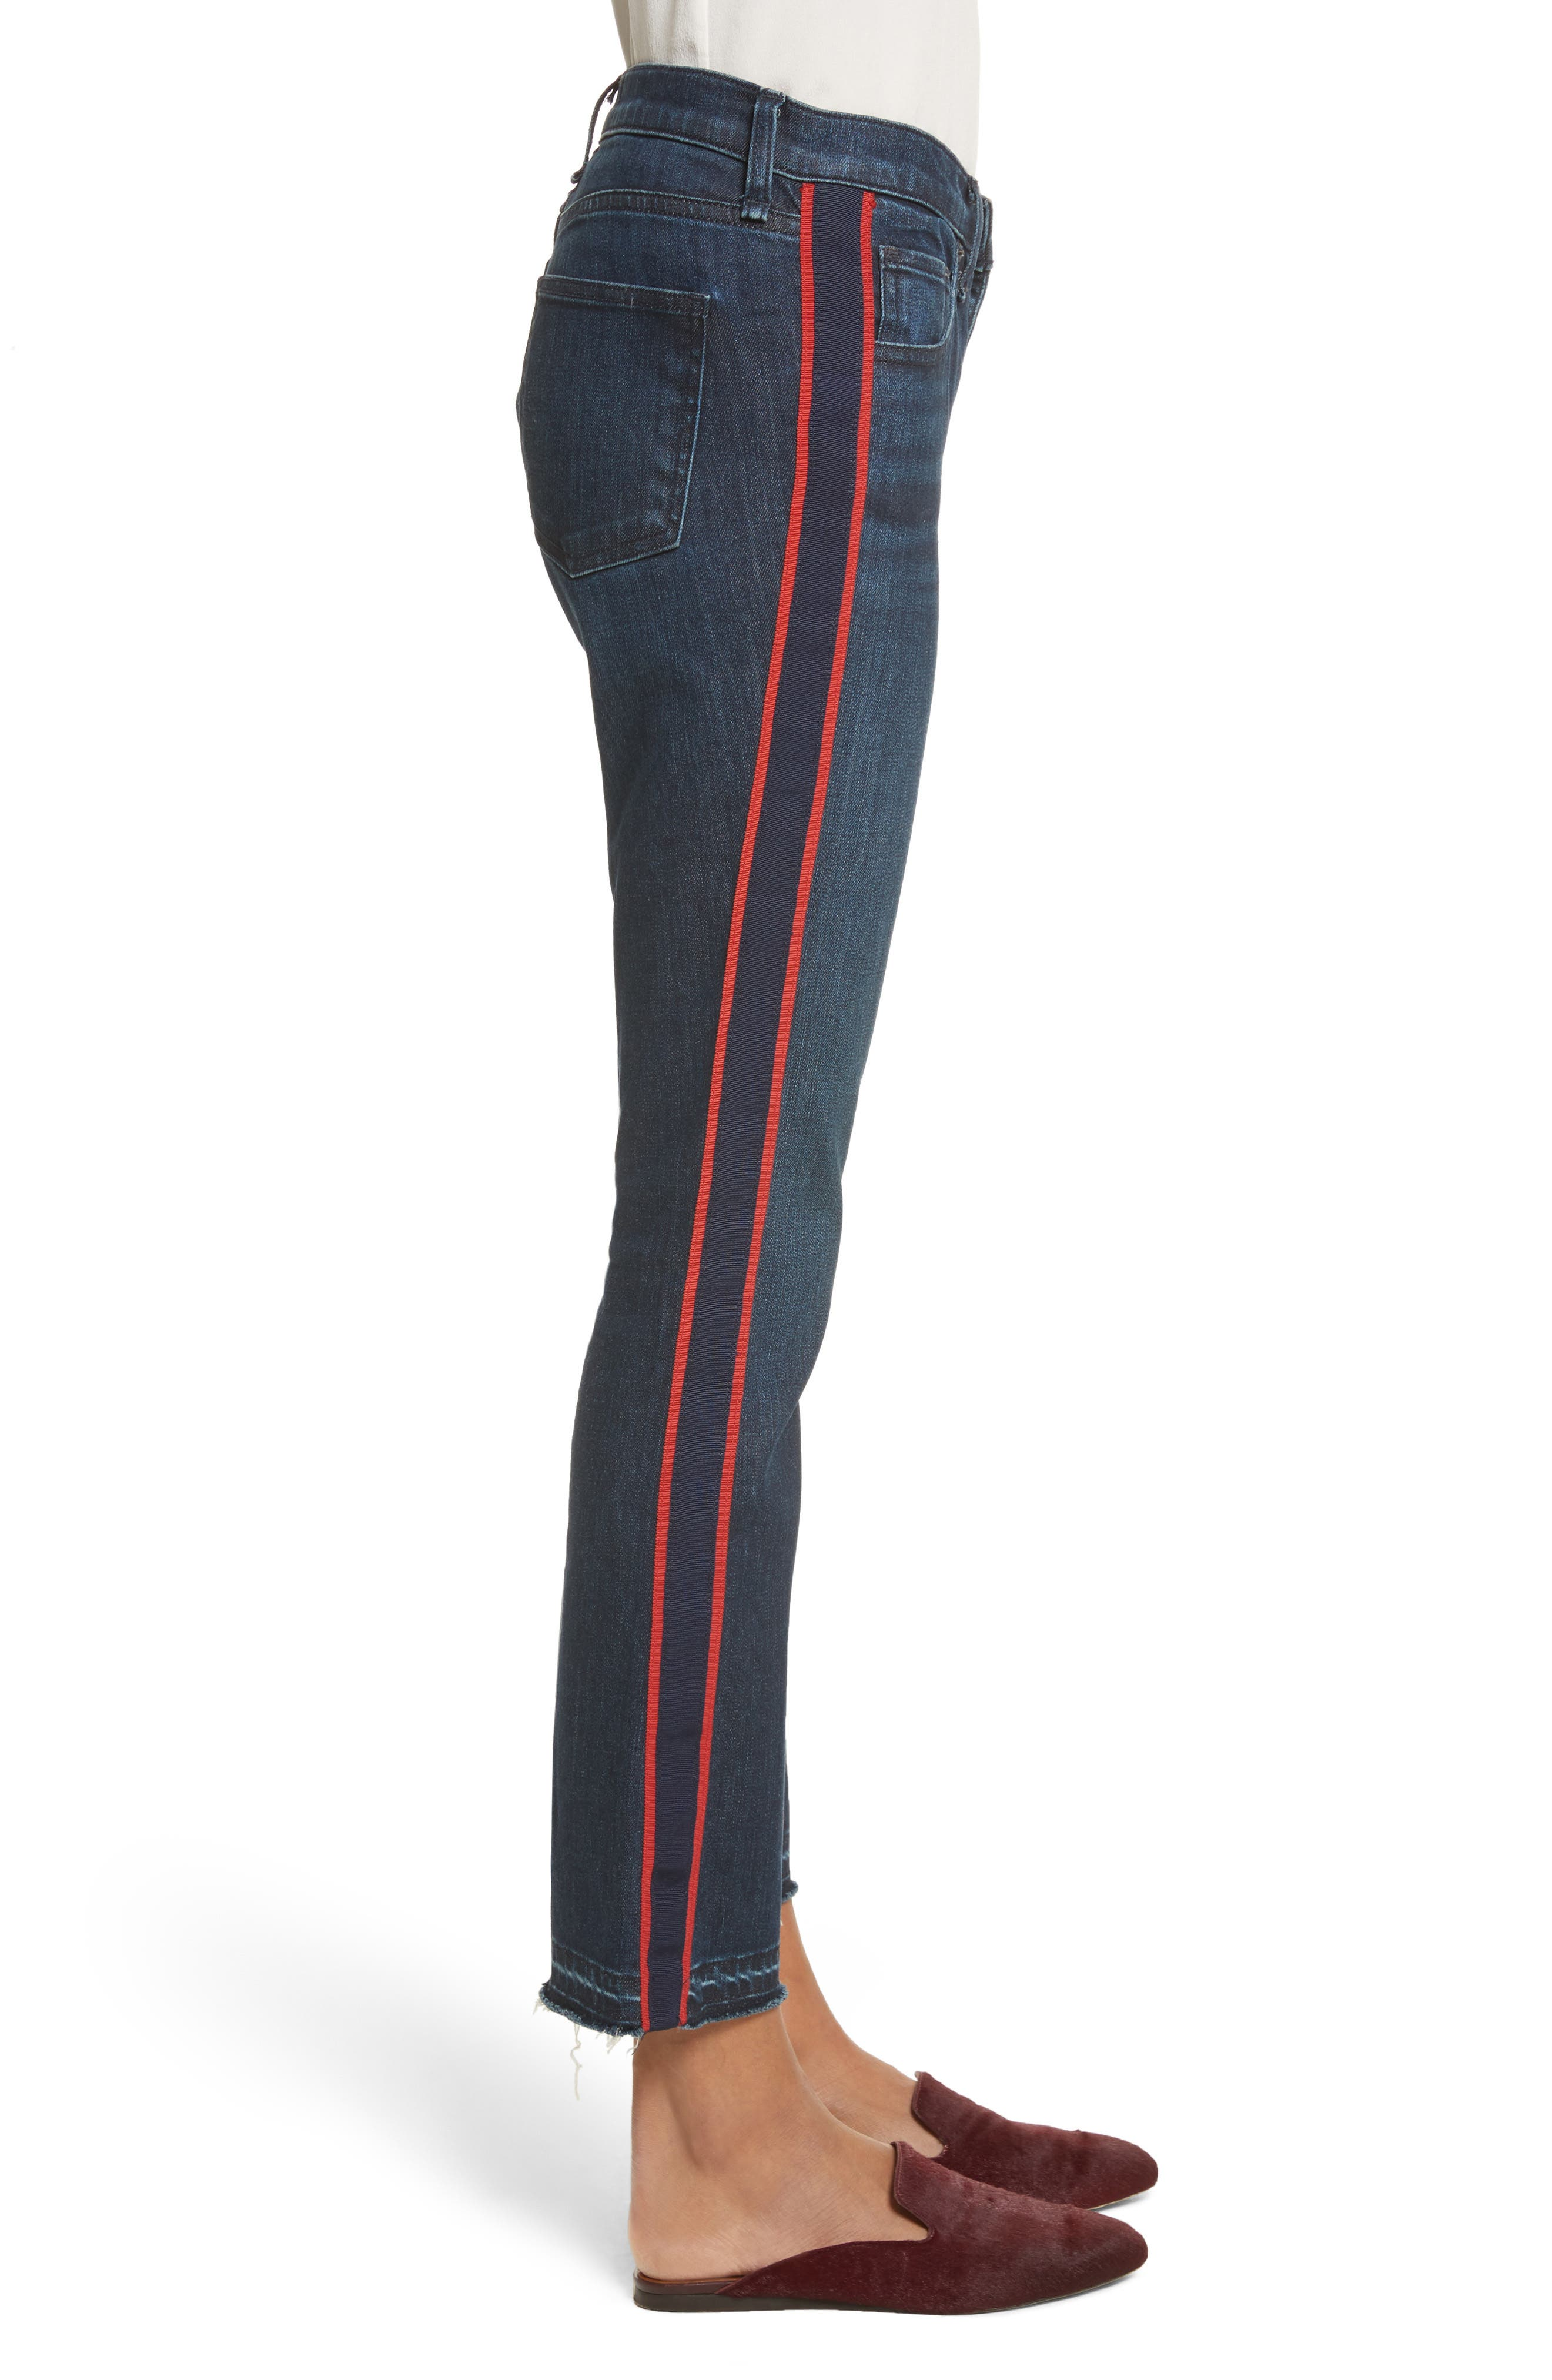 Carolyn Tuxedo Stripe Baby Boot Crop Jeans,                             Alternate thumbnail 3, color,                             Midnight Fray/ Red